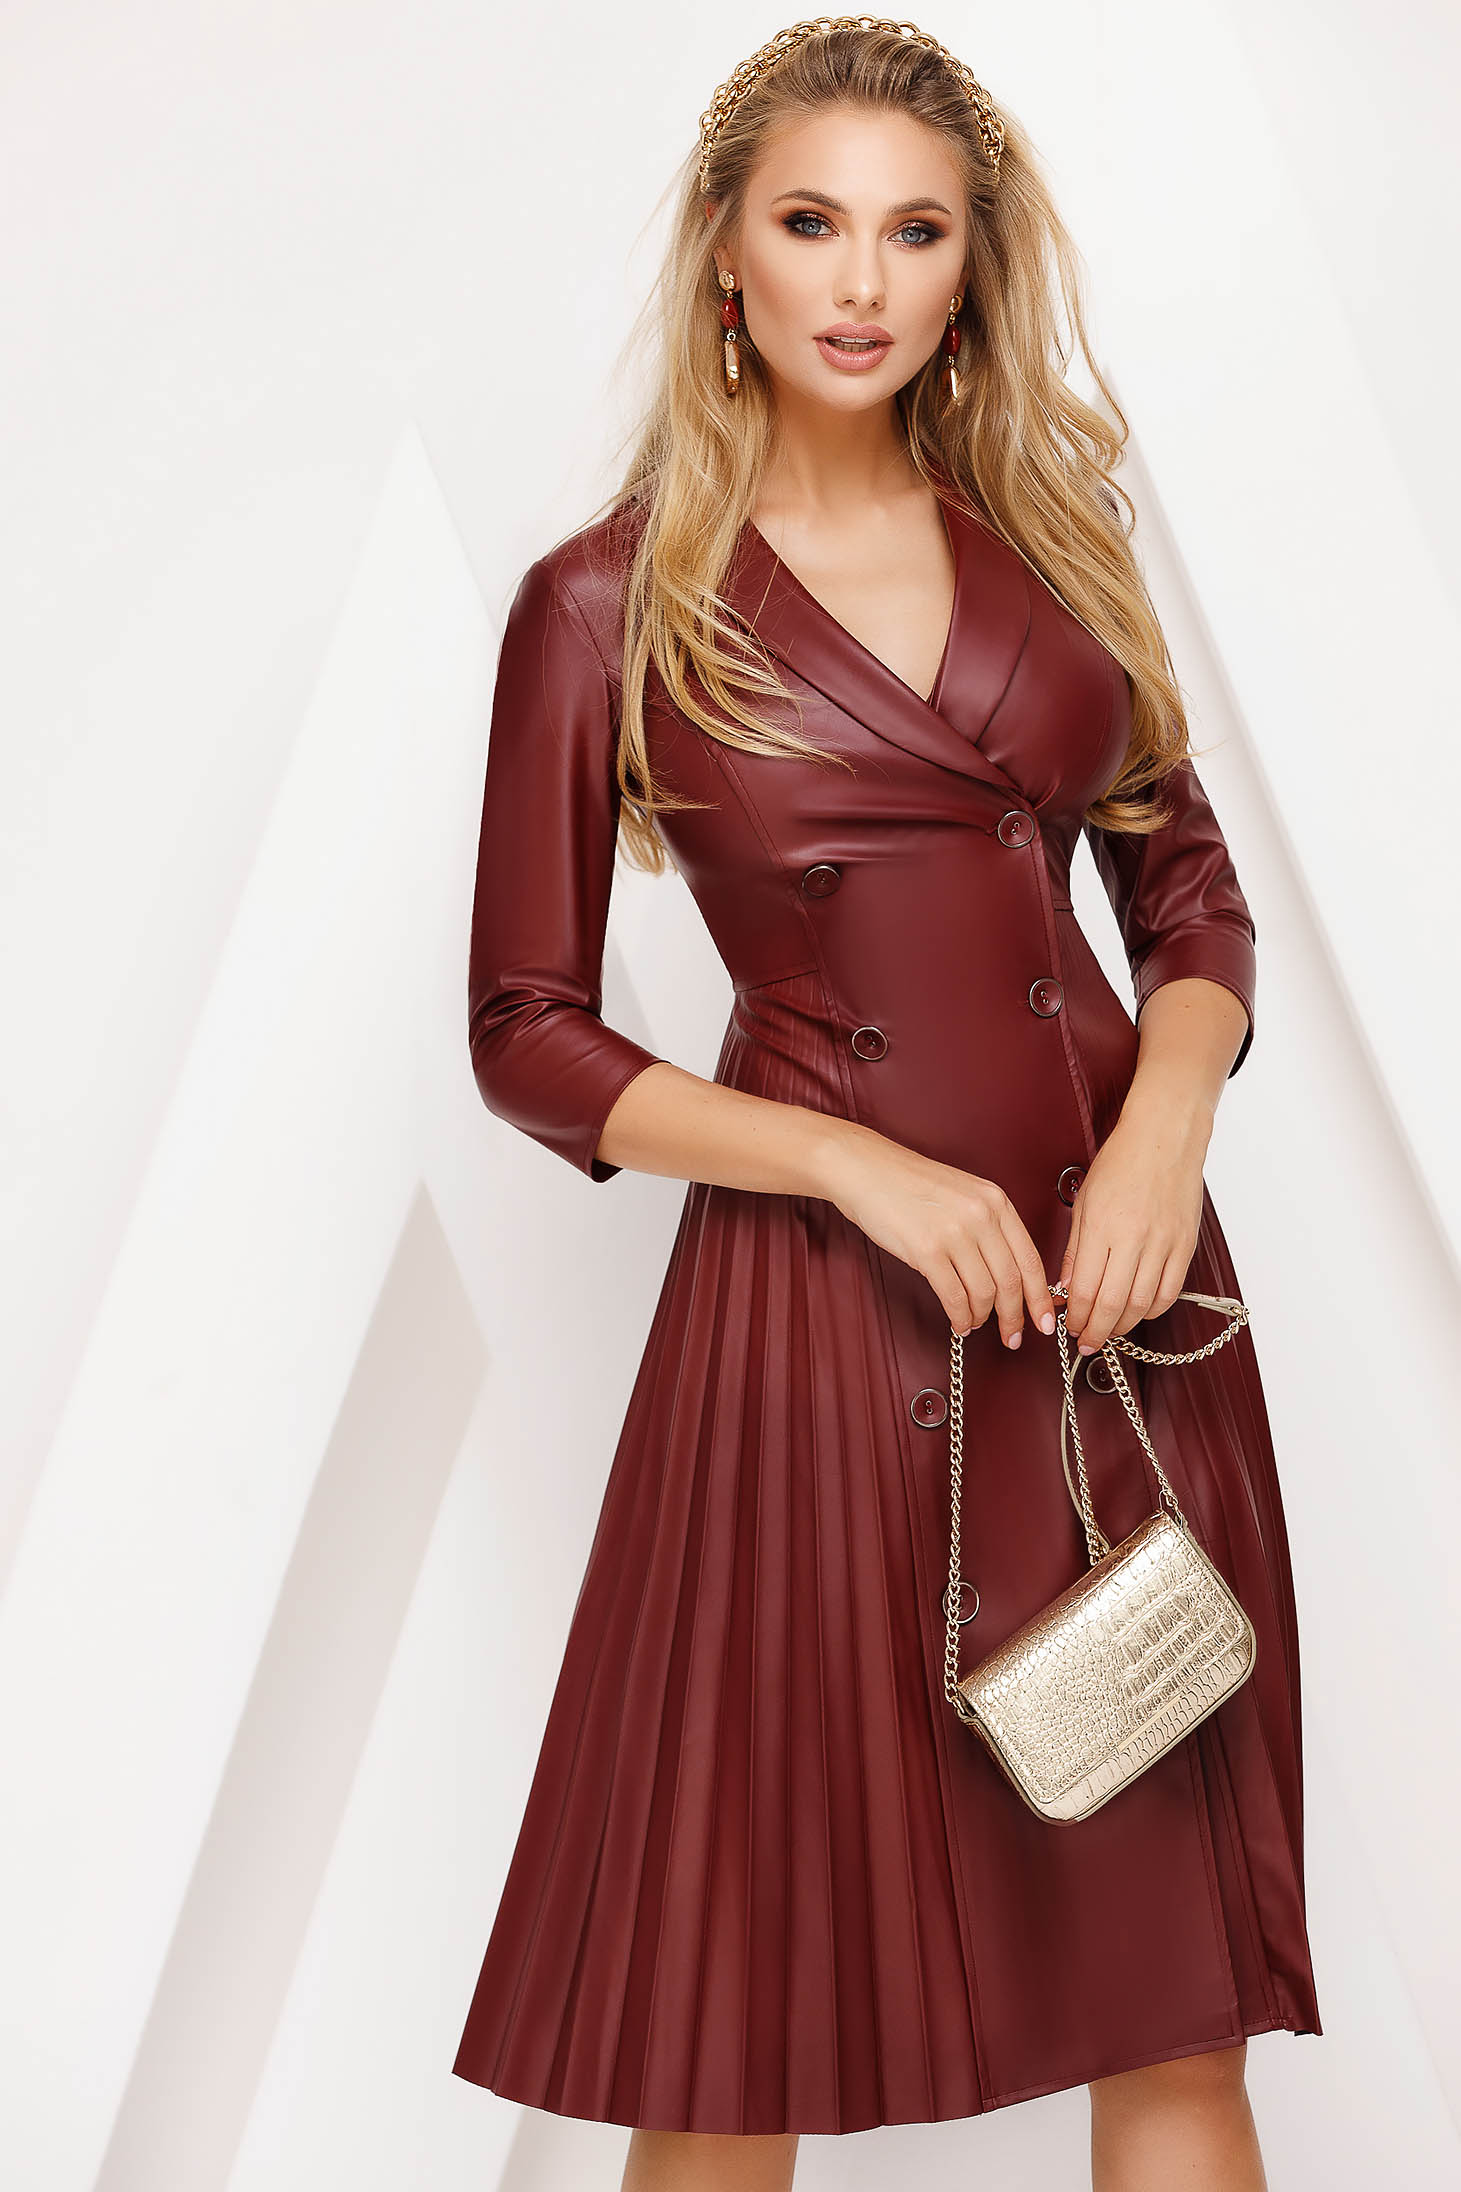 Dress burgundy midi folded up daily from ecological leather cloche